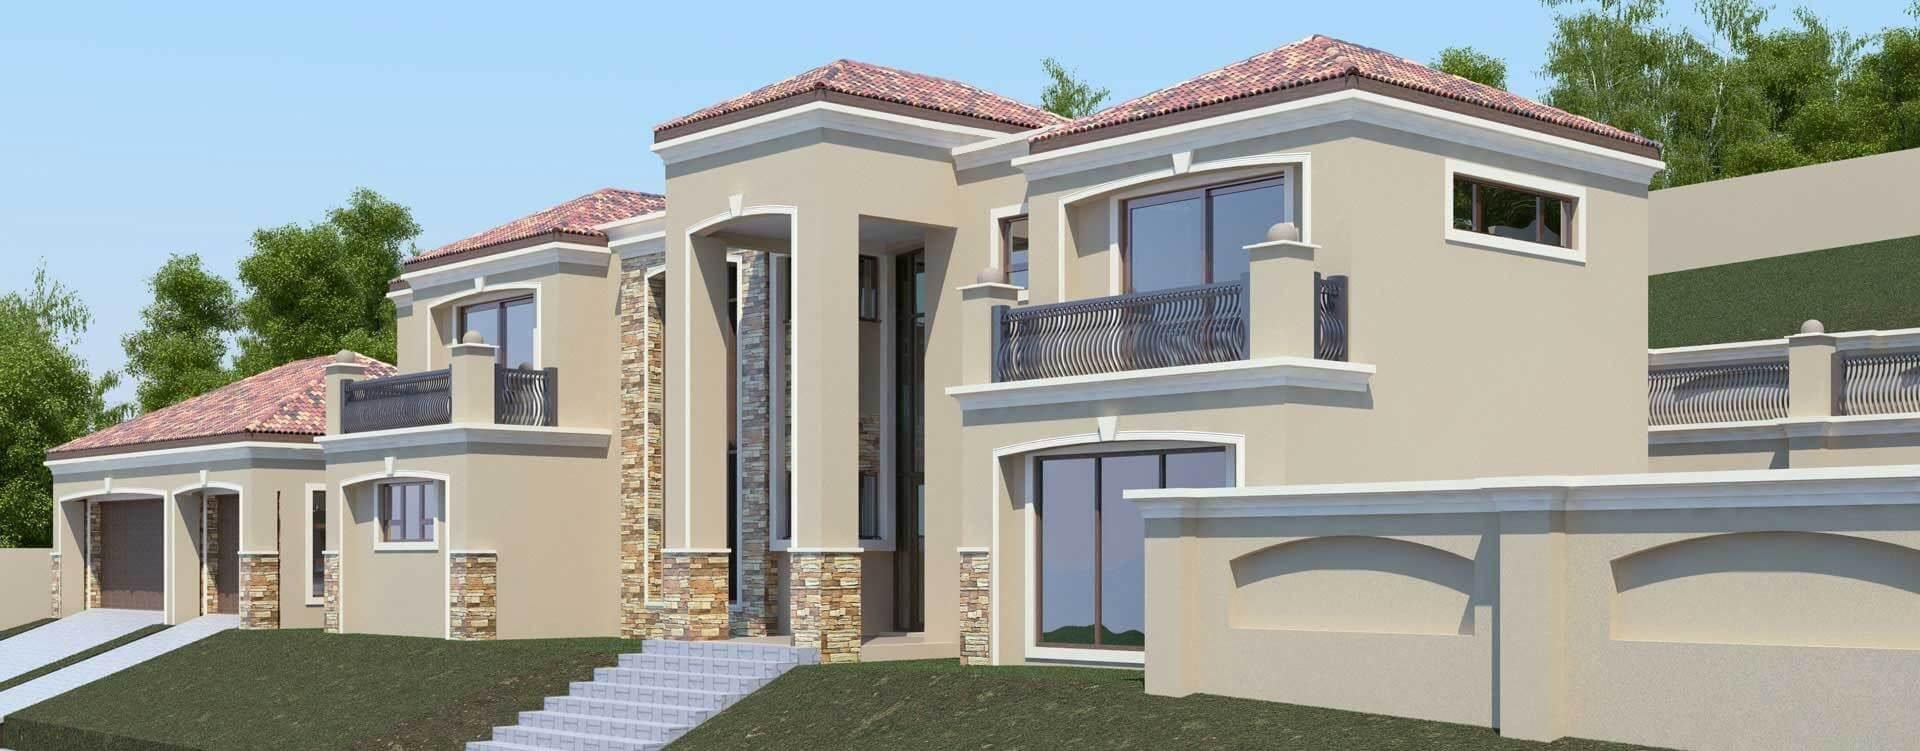 Best House Plans South Africa 4 Bedroom House Plans With Pictures